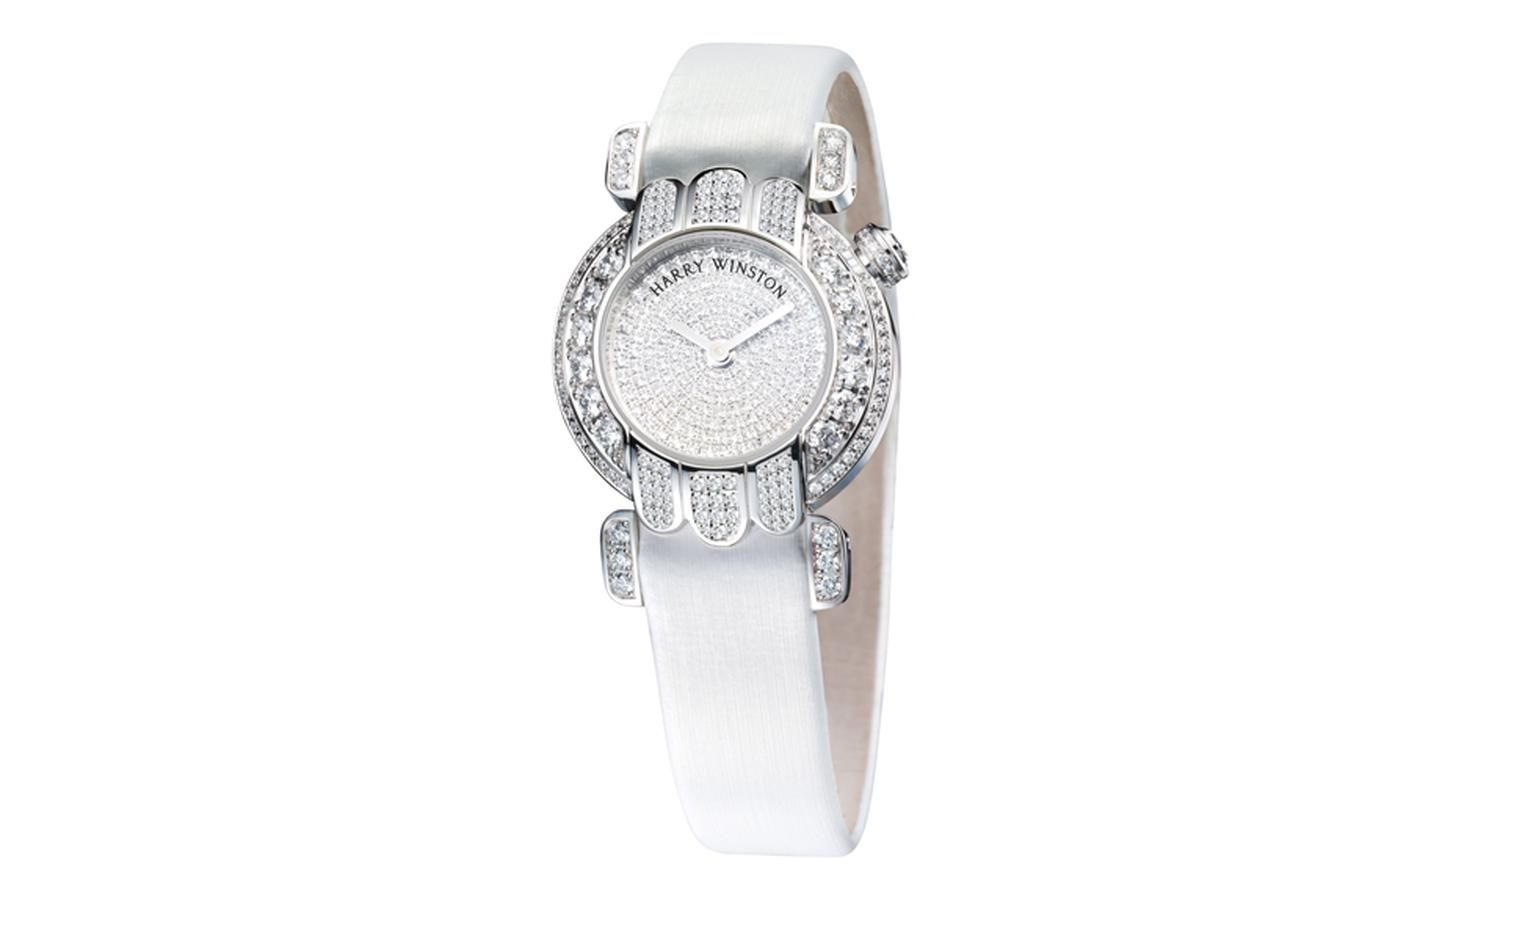 HARRY WINSTON, Premier Bijou, white gold dial set with diamonds